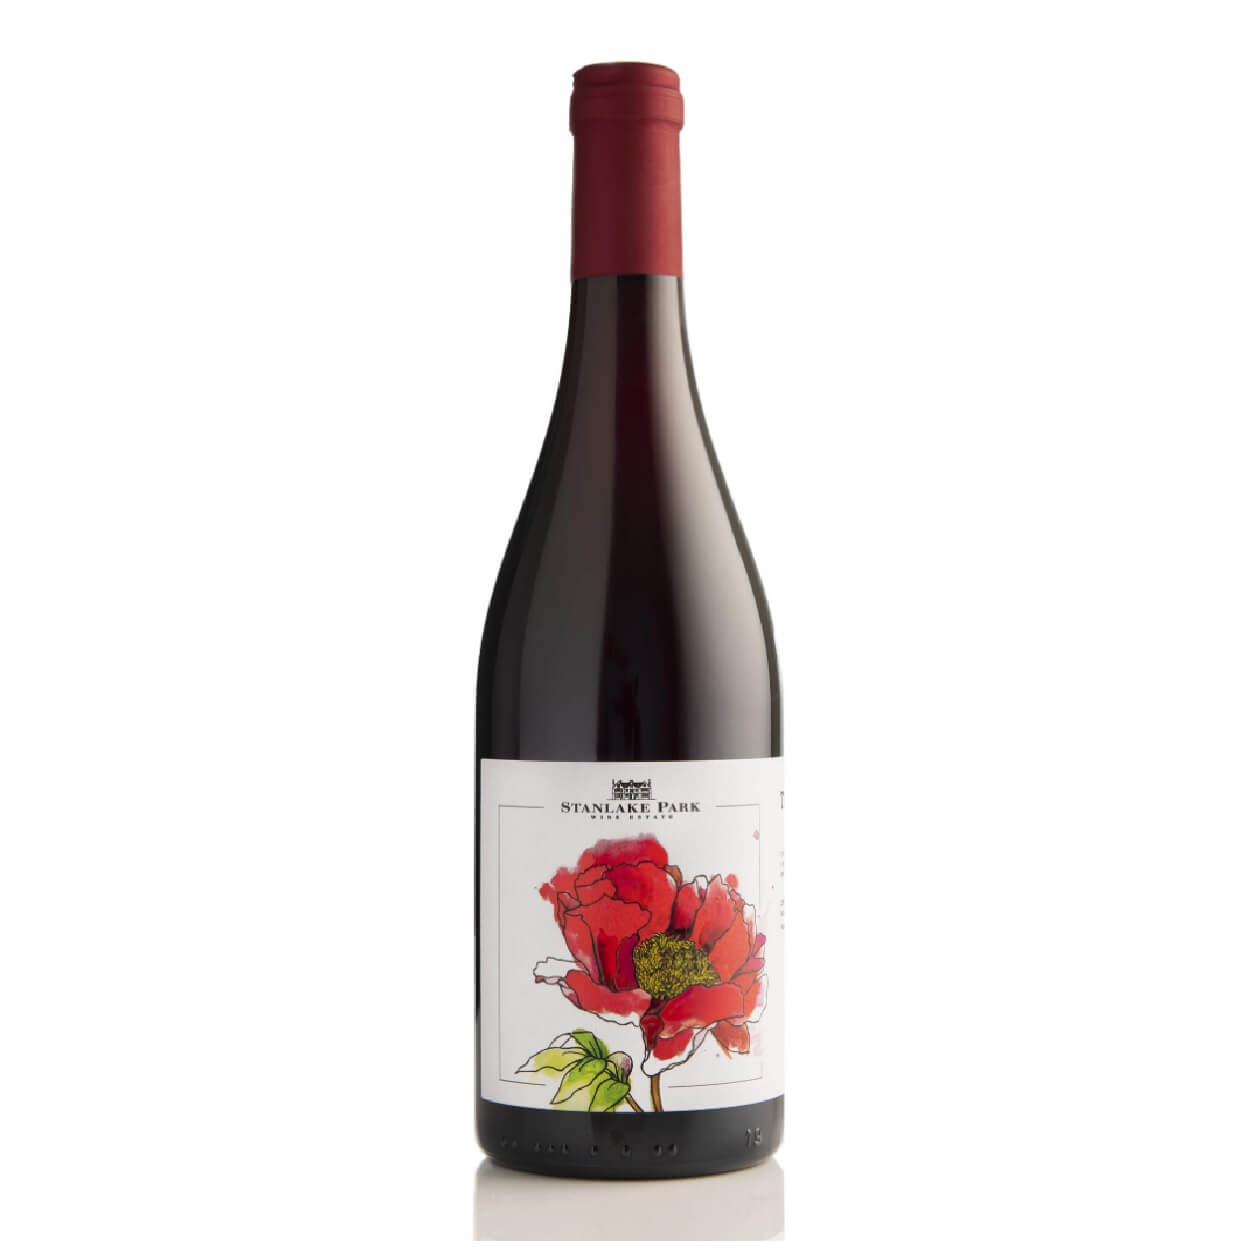 Stanlake Park The Reserve NV English Red Wine